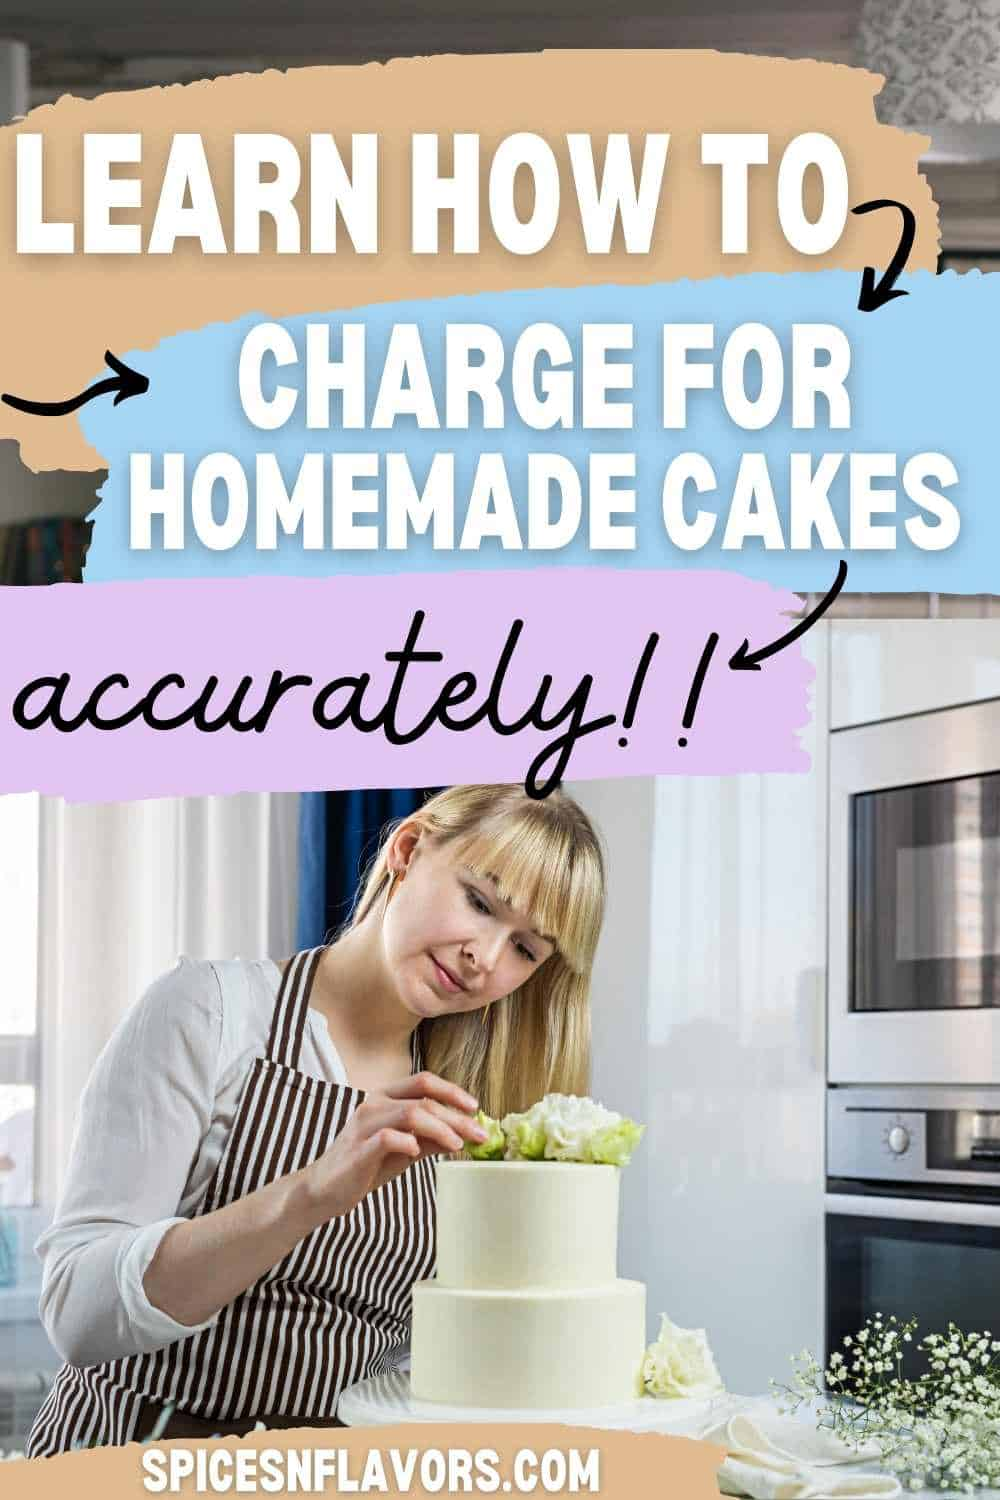 a woman decorating homemade cake with a text stating how to charge for homemade cakes